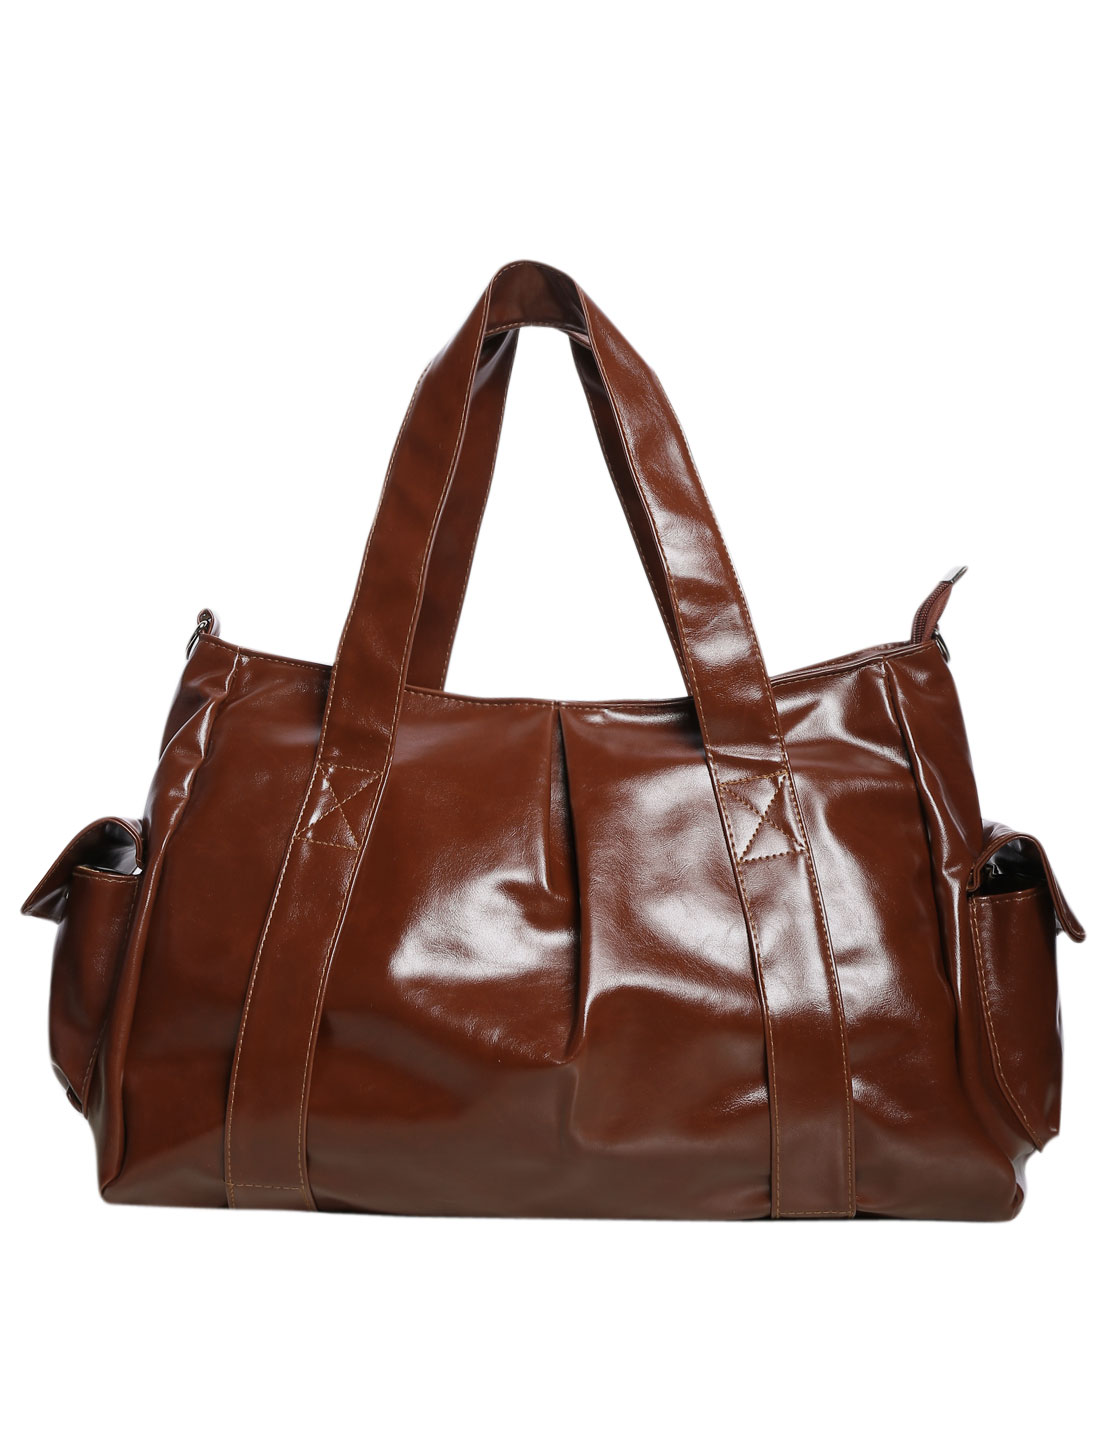 Fashion Women Faux Leather Satchel Handbag Tote Messenger Shoulder Bag Red-brown